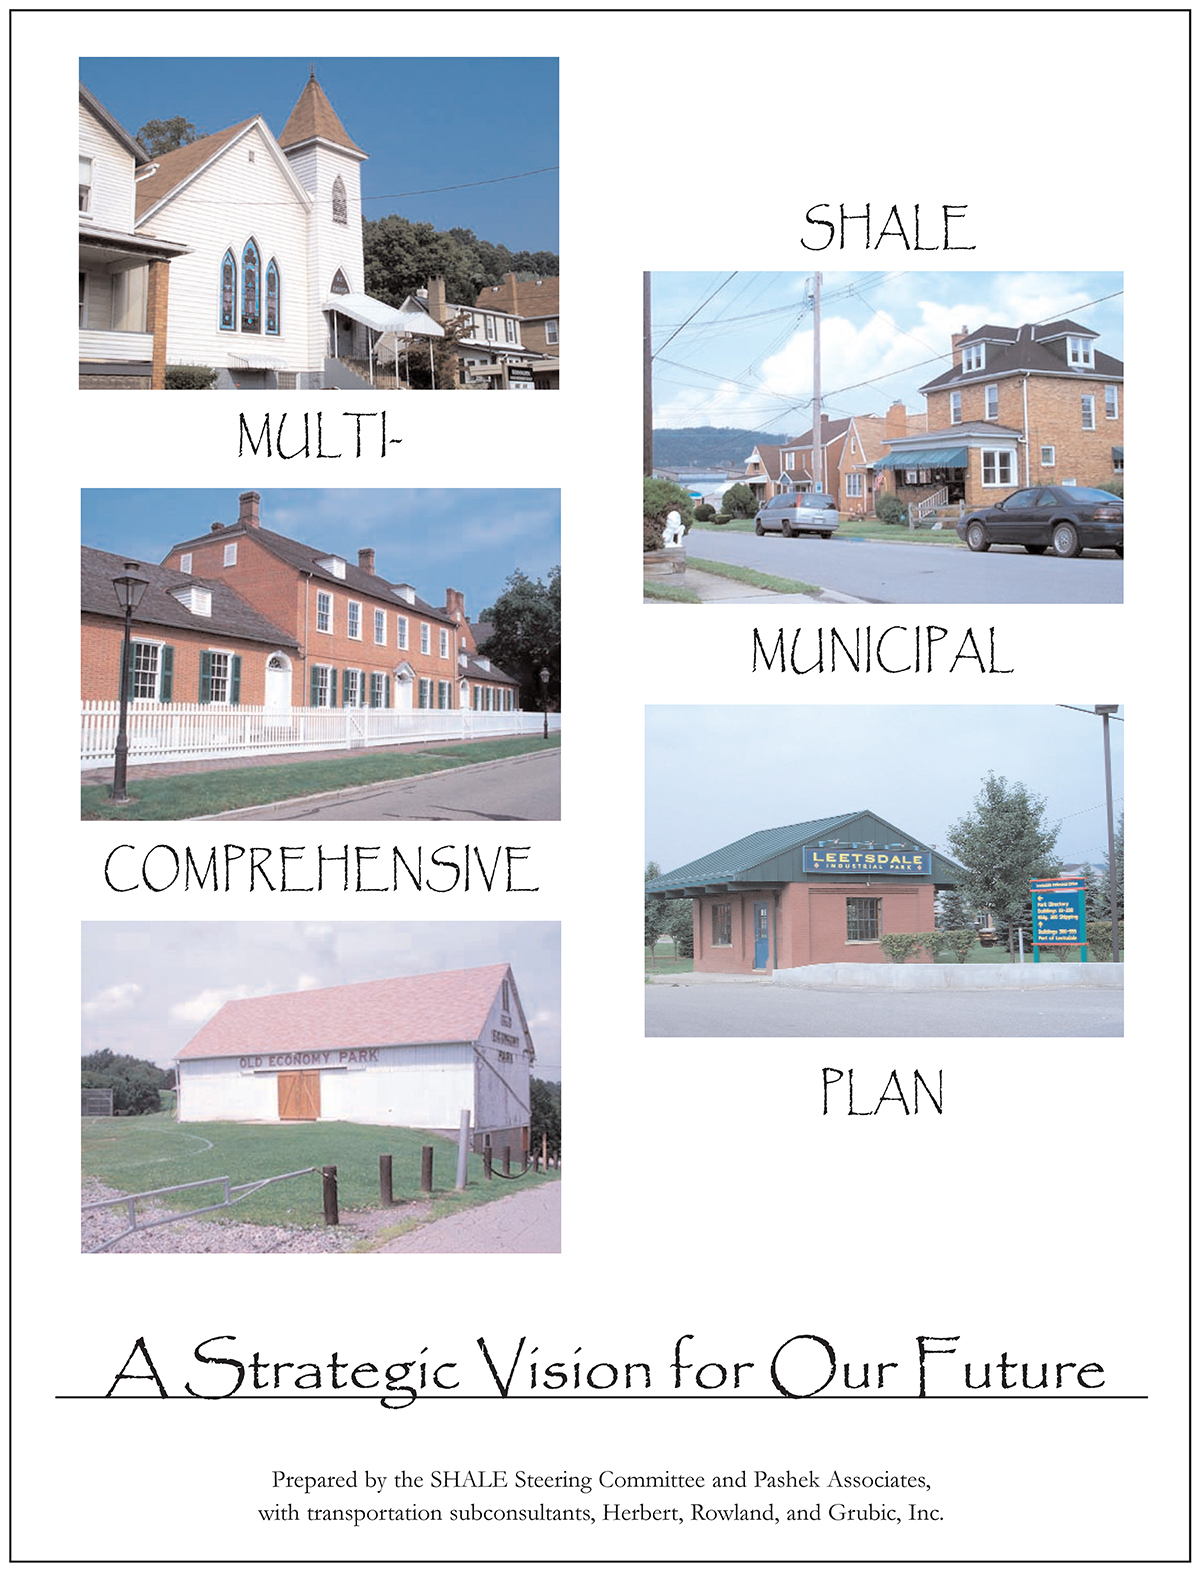 Shale Comprehensive Plan